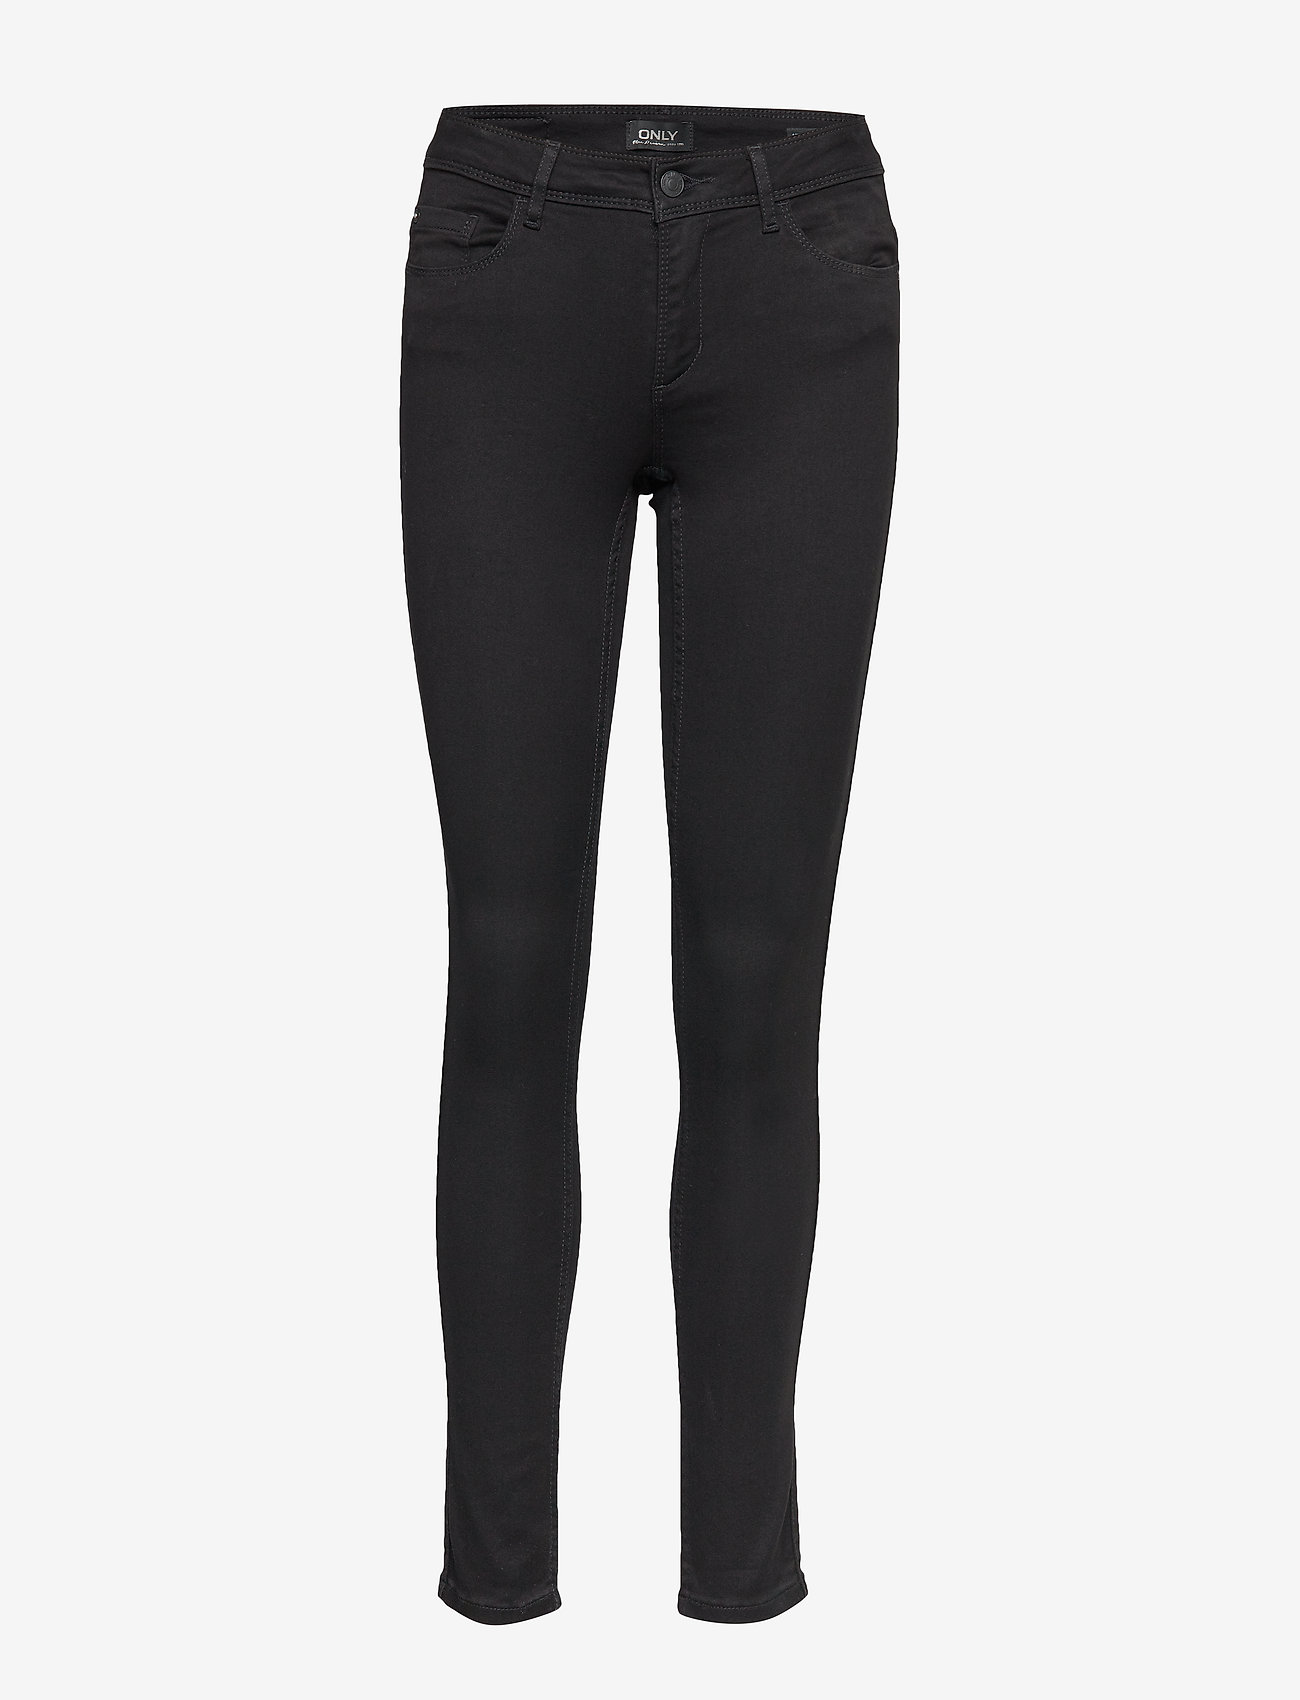 ONLY - onlULTIMATE KING REG JEANS CRY100 NOOS - dżinsy skinny fit - black denim - 0